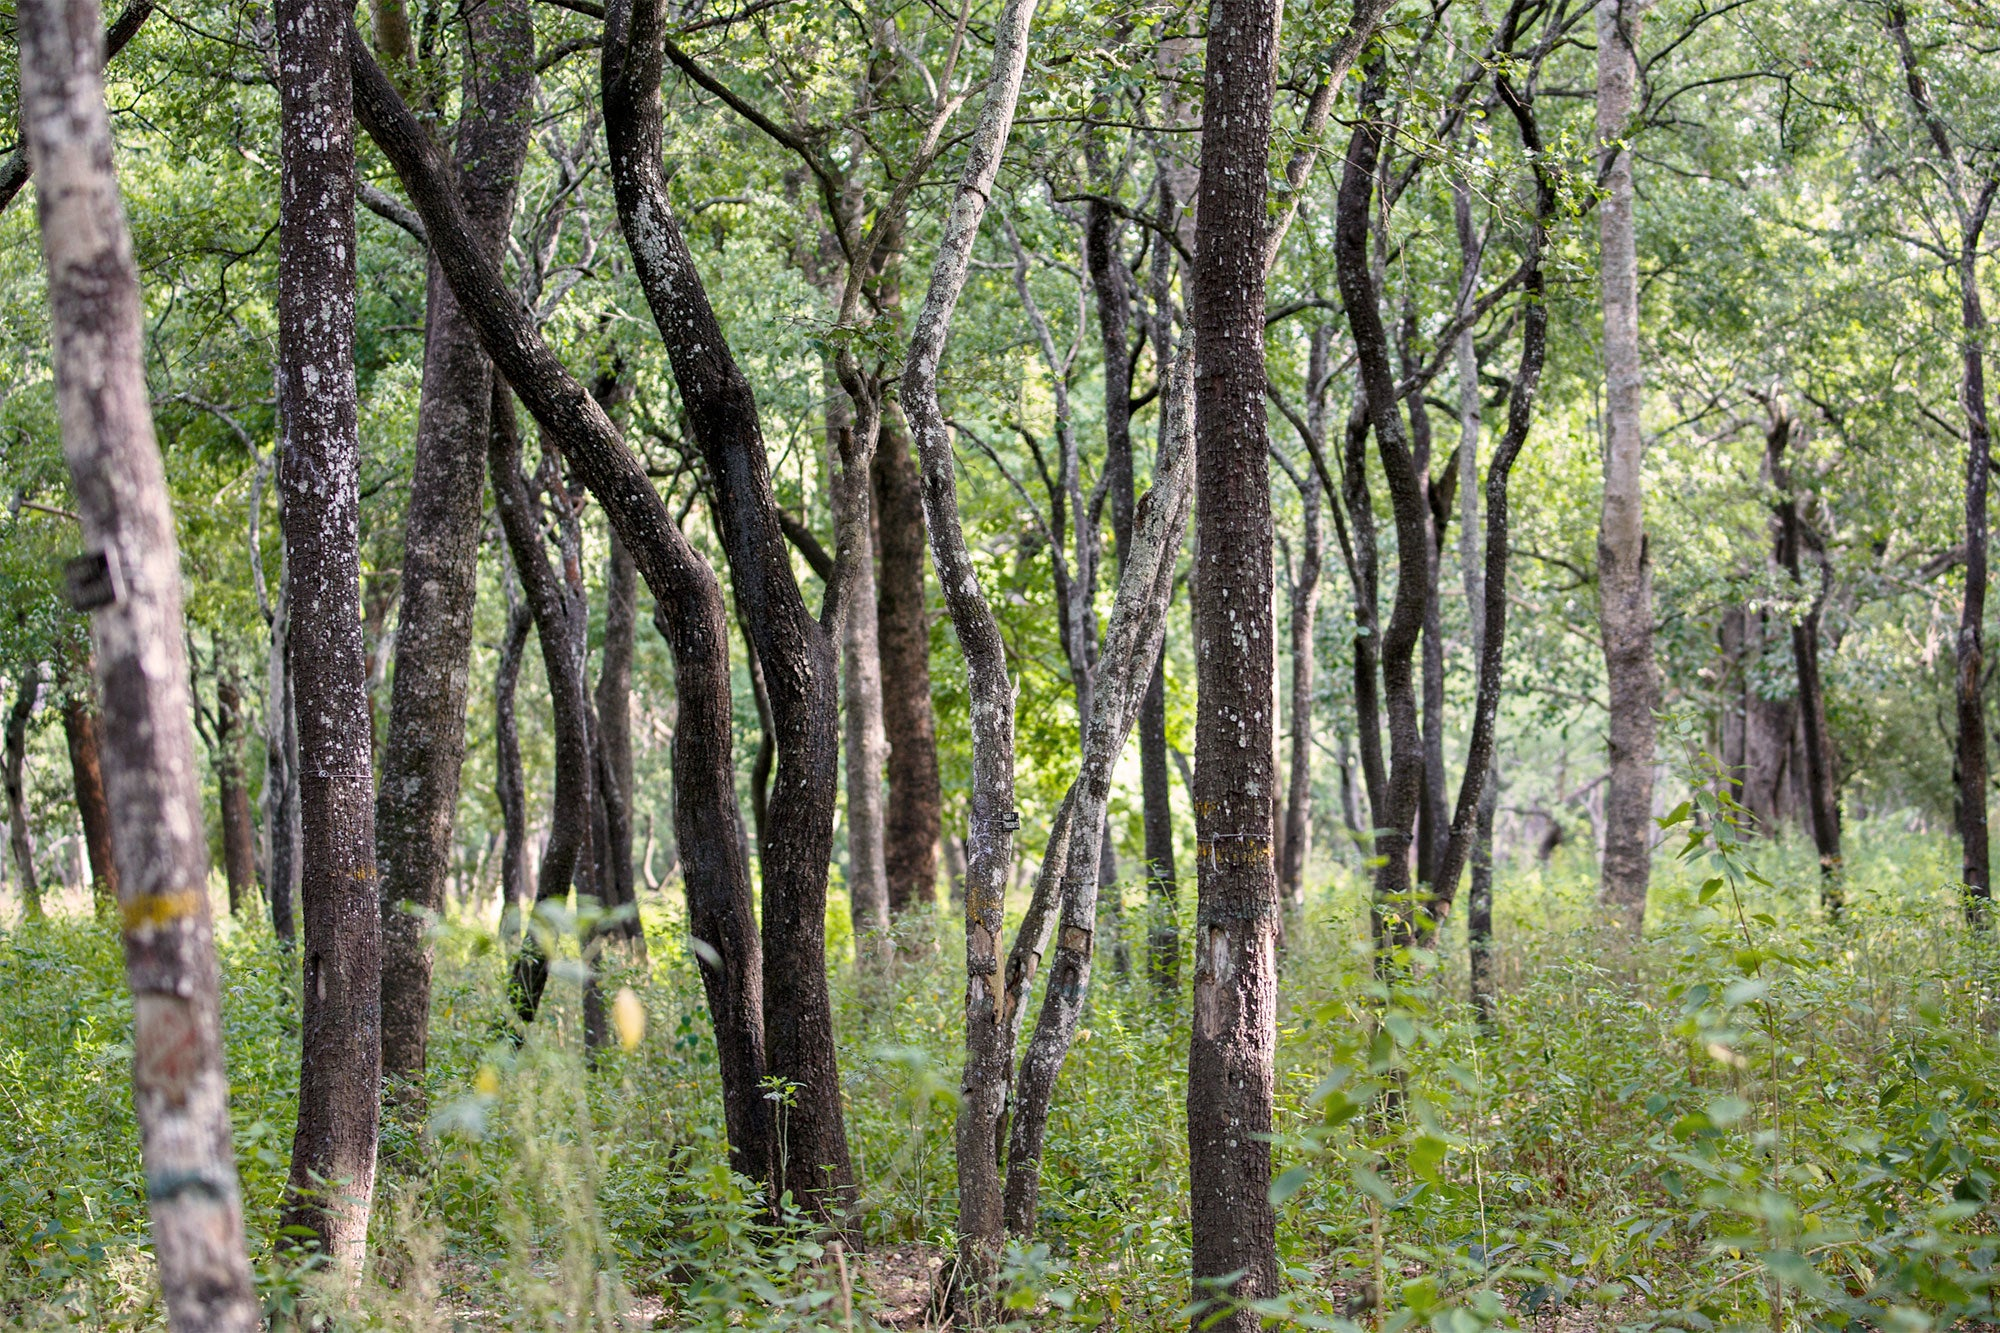 Sandalwood forest reserve in Marayoor, Kerala, India